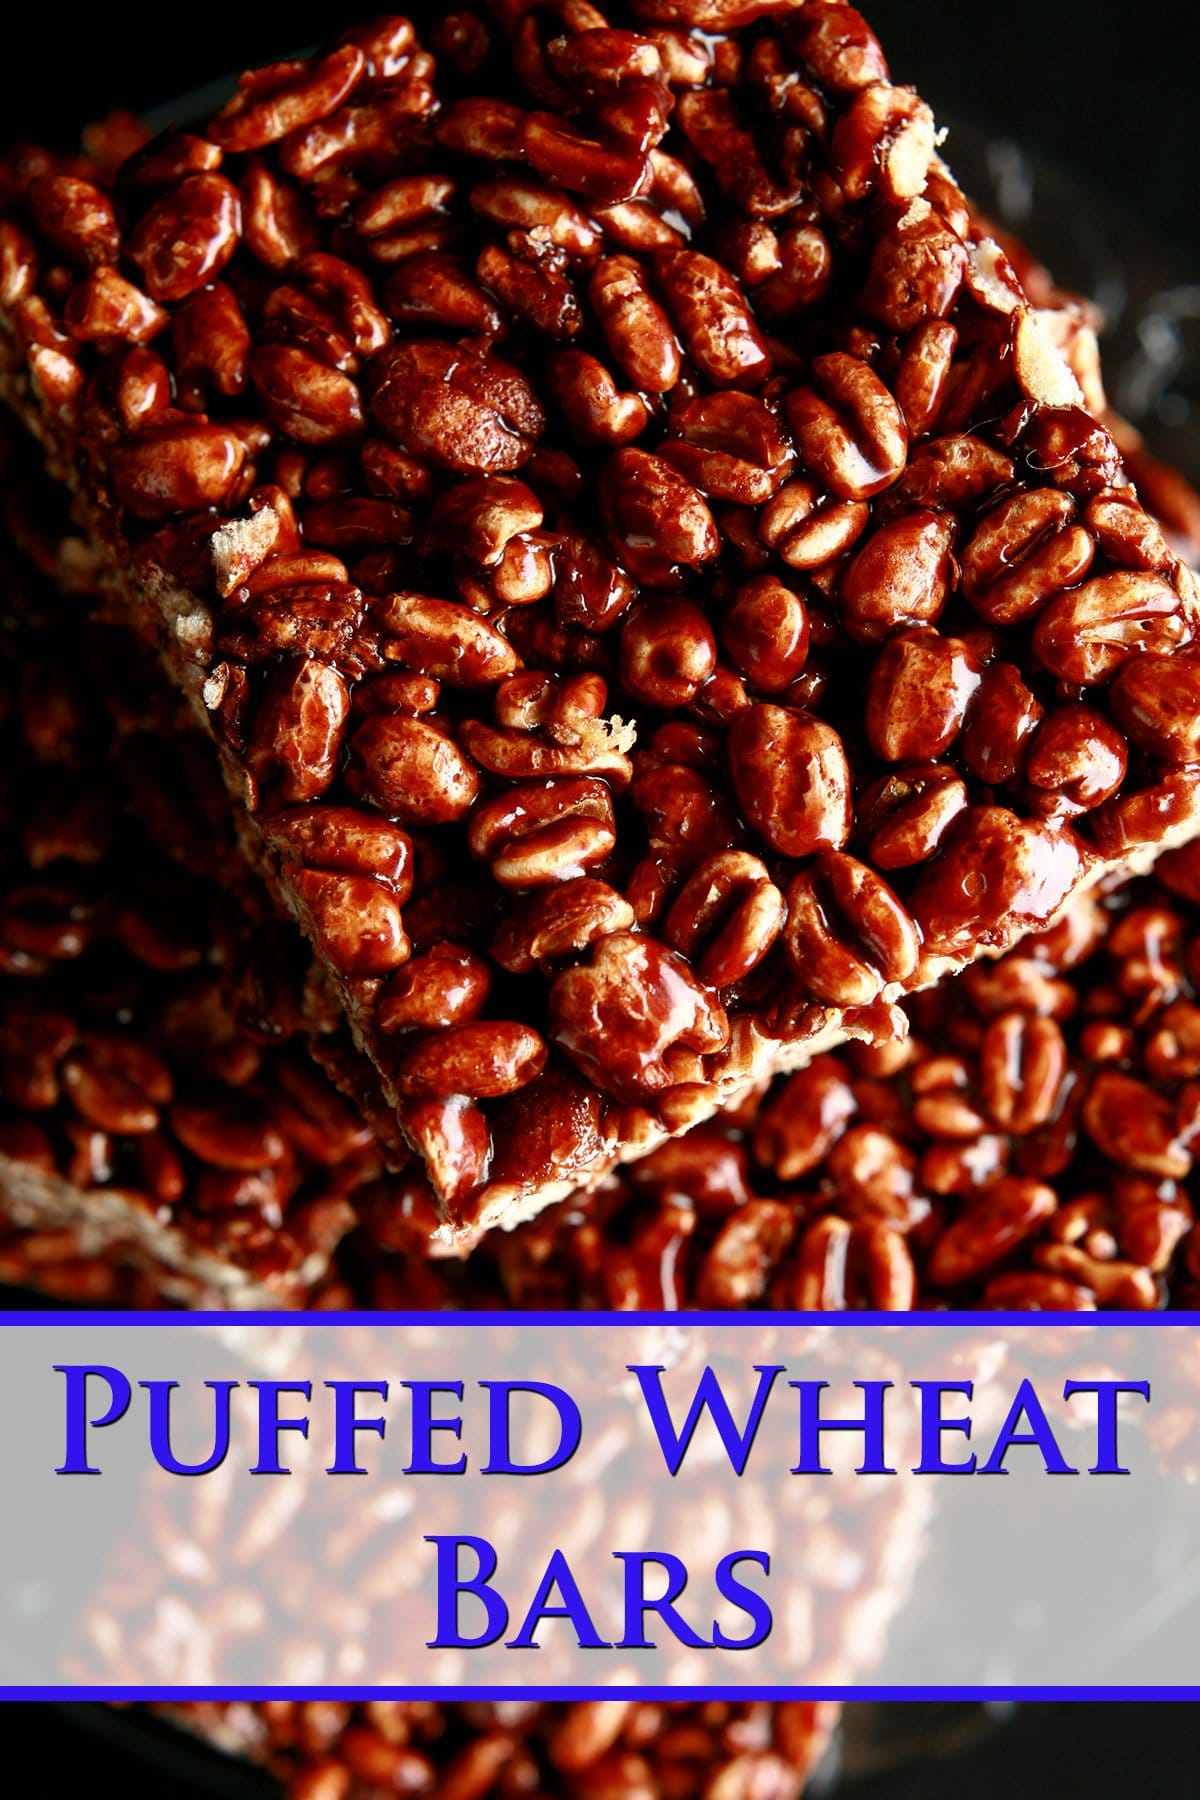 A small glass plate stacked with large pieces of puffed wheat squares.